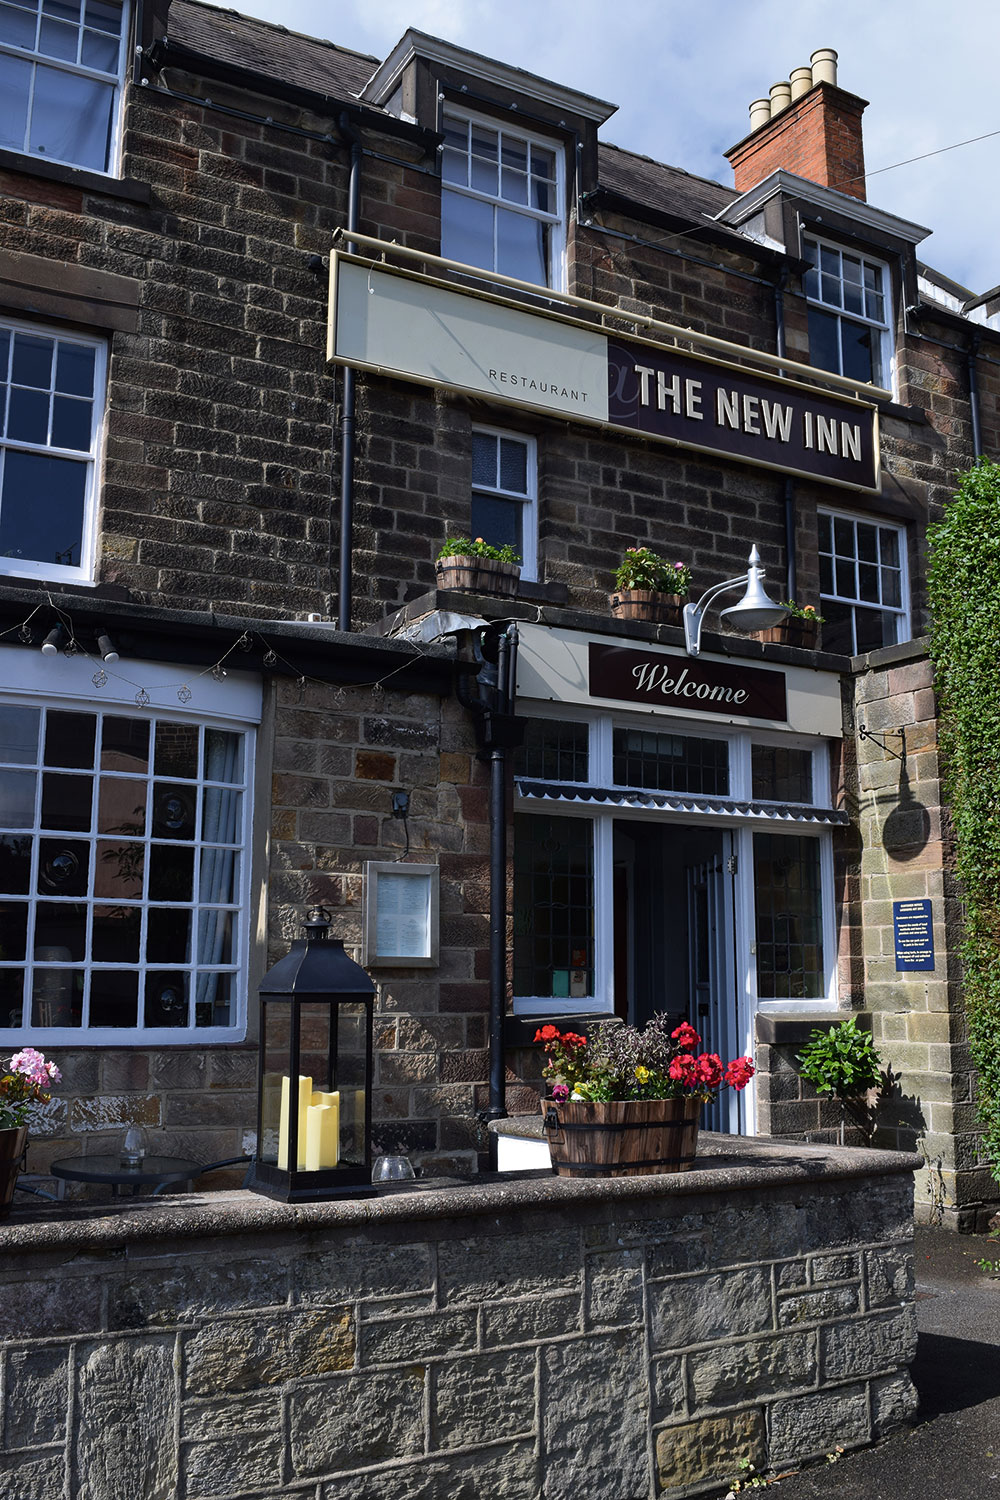 Restaurant Review – Lunch at The New Inn, Milford